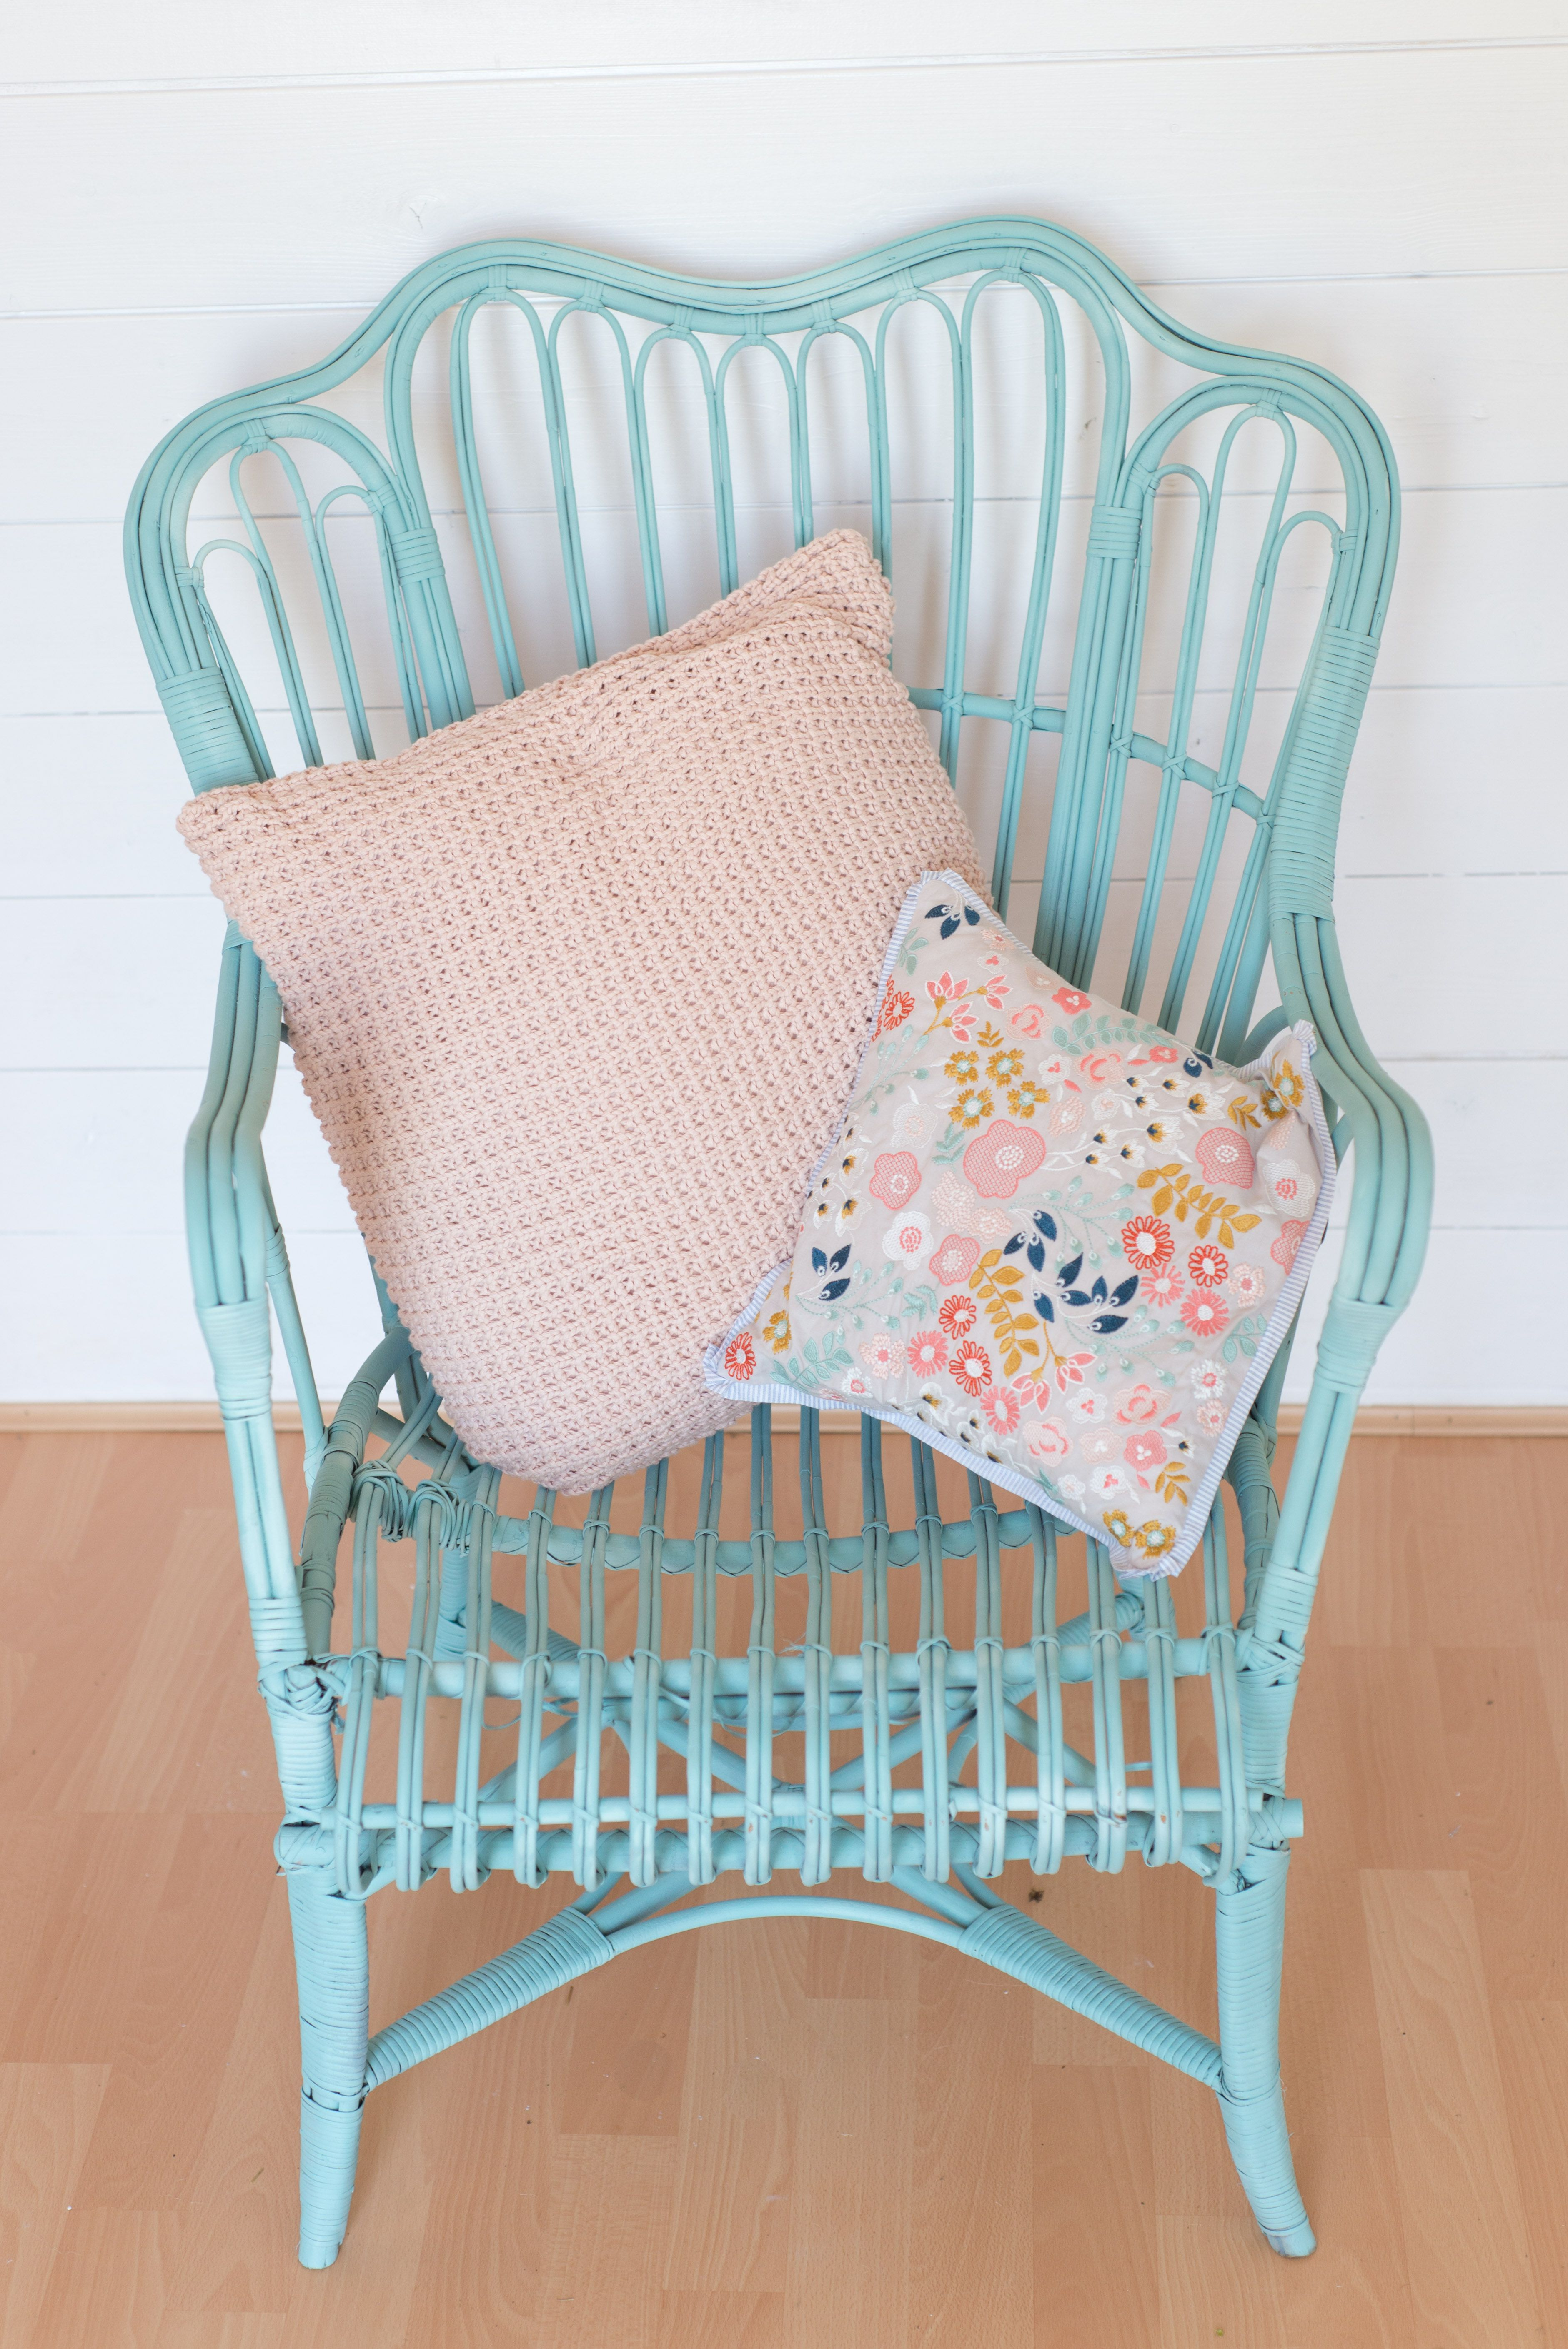 5 Wicker Chair Makeover Using Pale Turquoise Pinty Plus Aerosol Chalk Paint